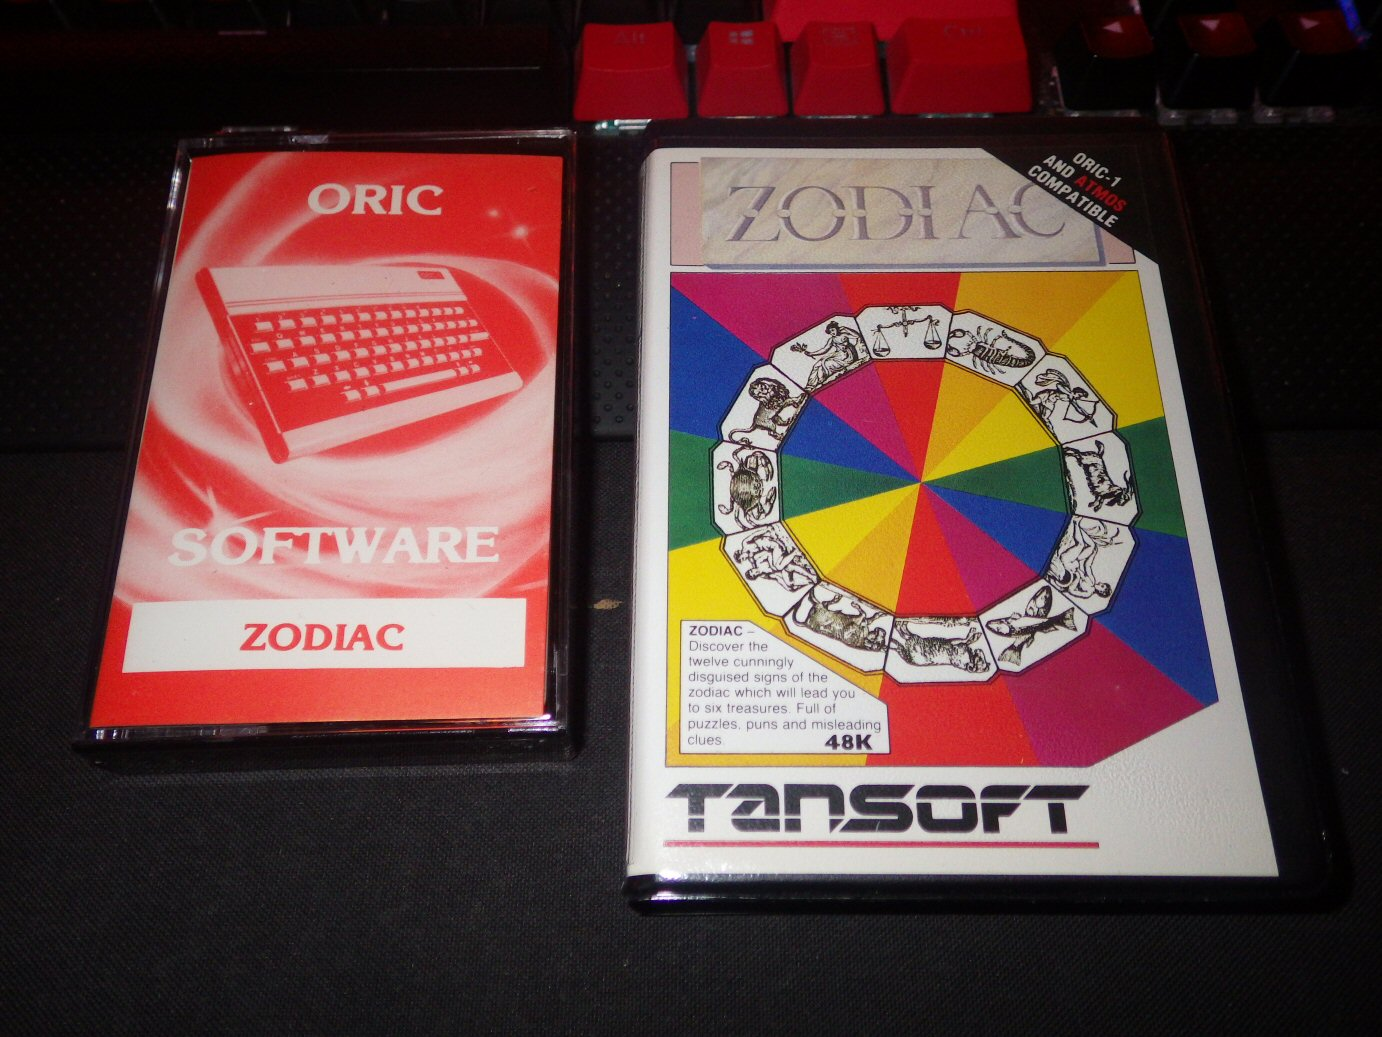 Zodiac (Tansoft) in two different formats